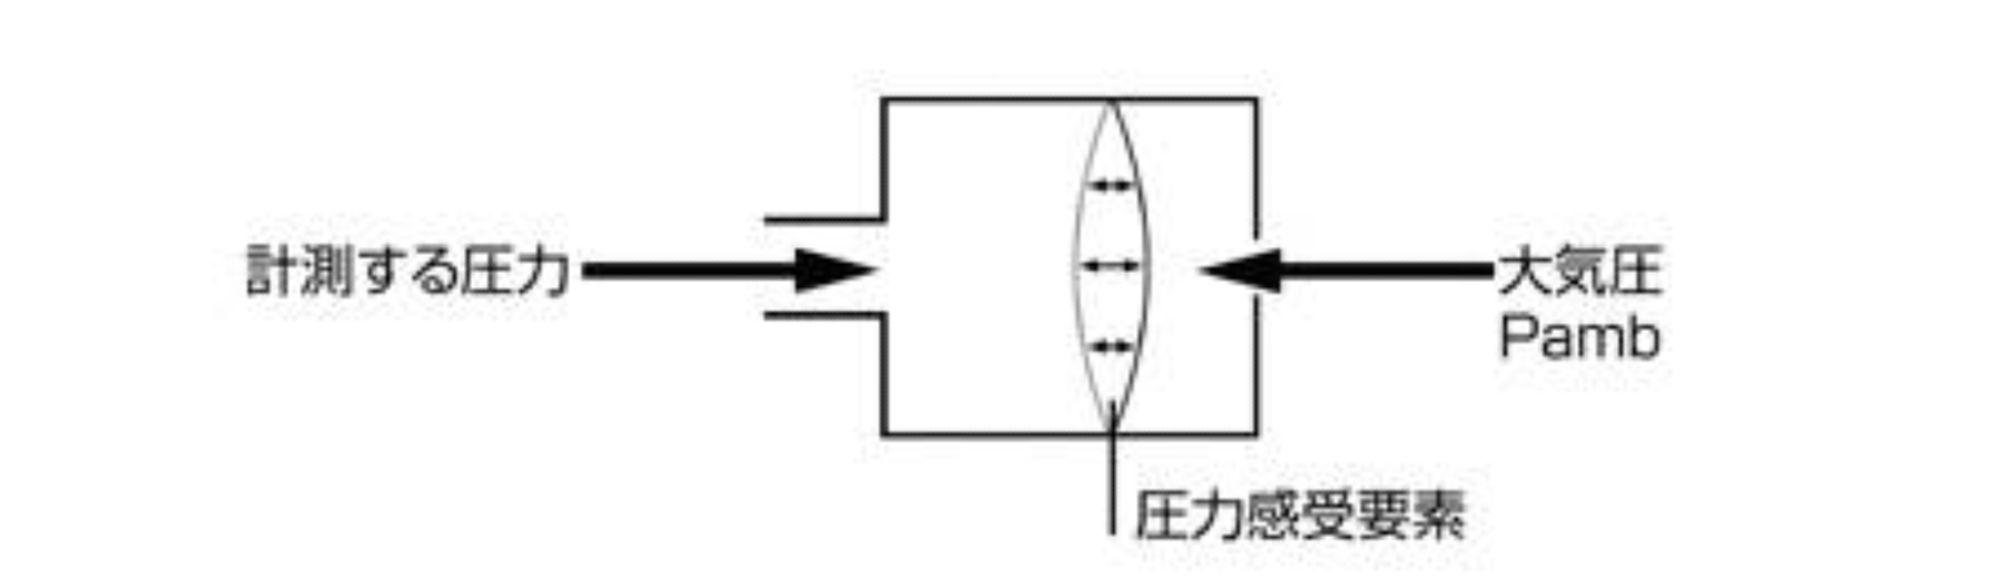 jp_differential_pressure_FAQ_3.jpg